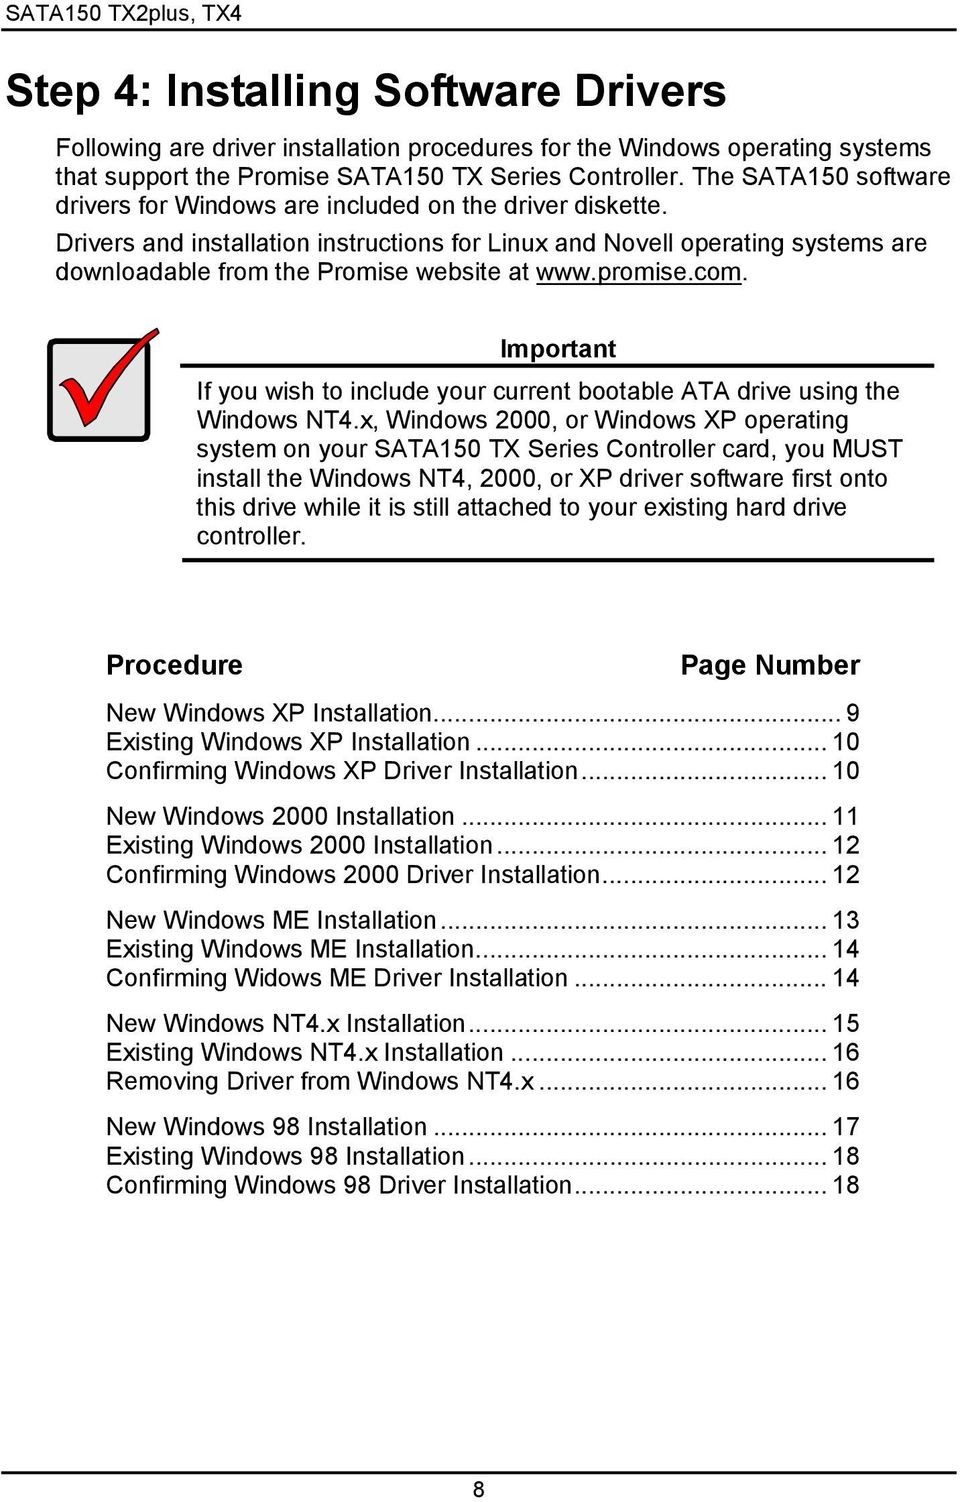 Drivers and installation instructions for Linux and Novell operating systems are downloadable from the Promise website at www.promise.com.